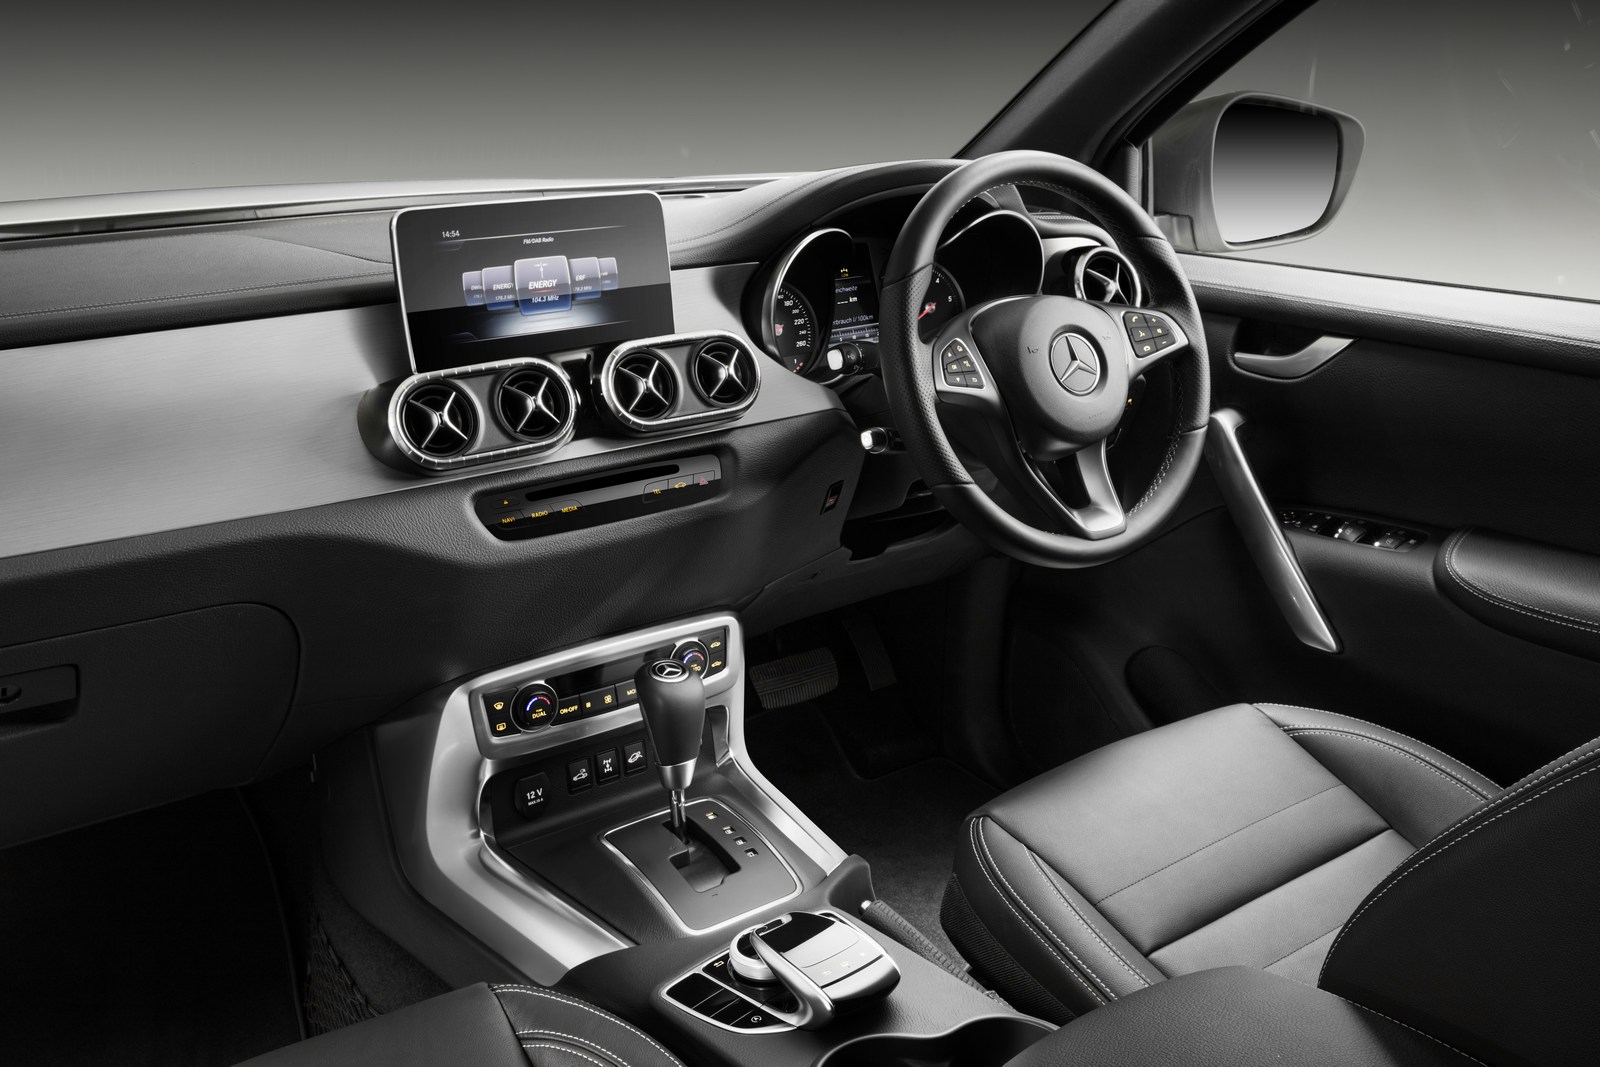 Mercedes-Benz X-Klasse – Interieur, Rechtslenker, Ausstattungslinie POWER   Mercedes-Benz X-Class – Interior, RHD, design and equipment line POWER